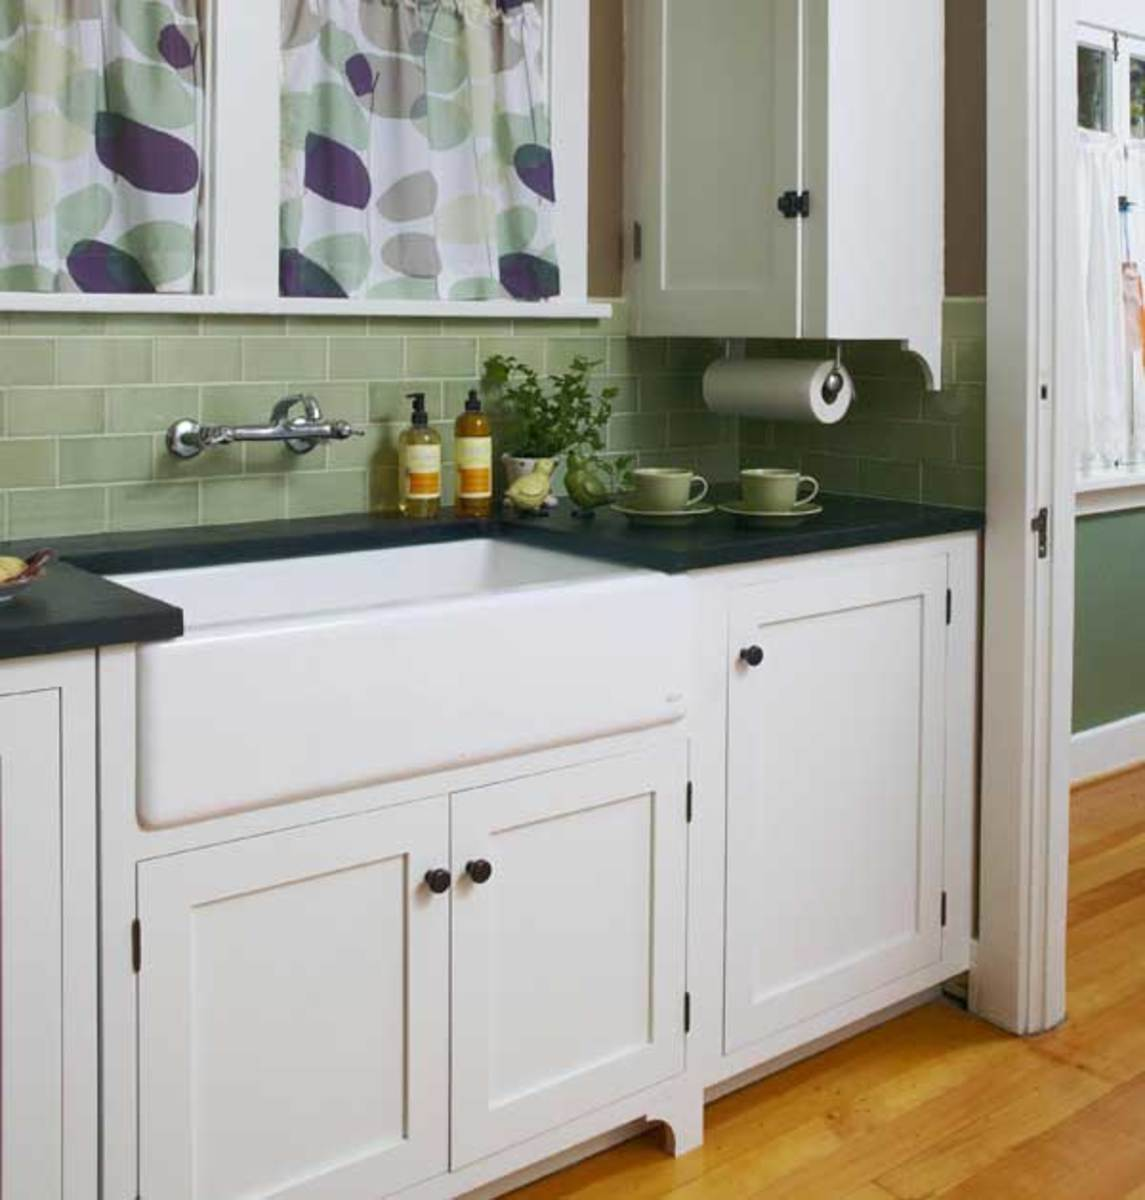 Apron Front Sink With Backsplash : The big, apron-front sink is an attractive stand-in for old-fashioned ...